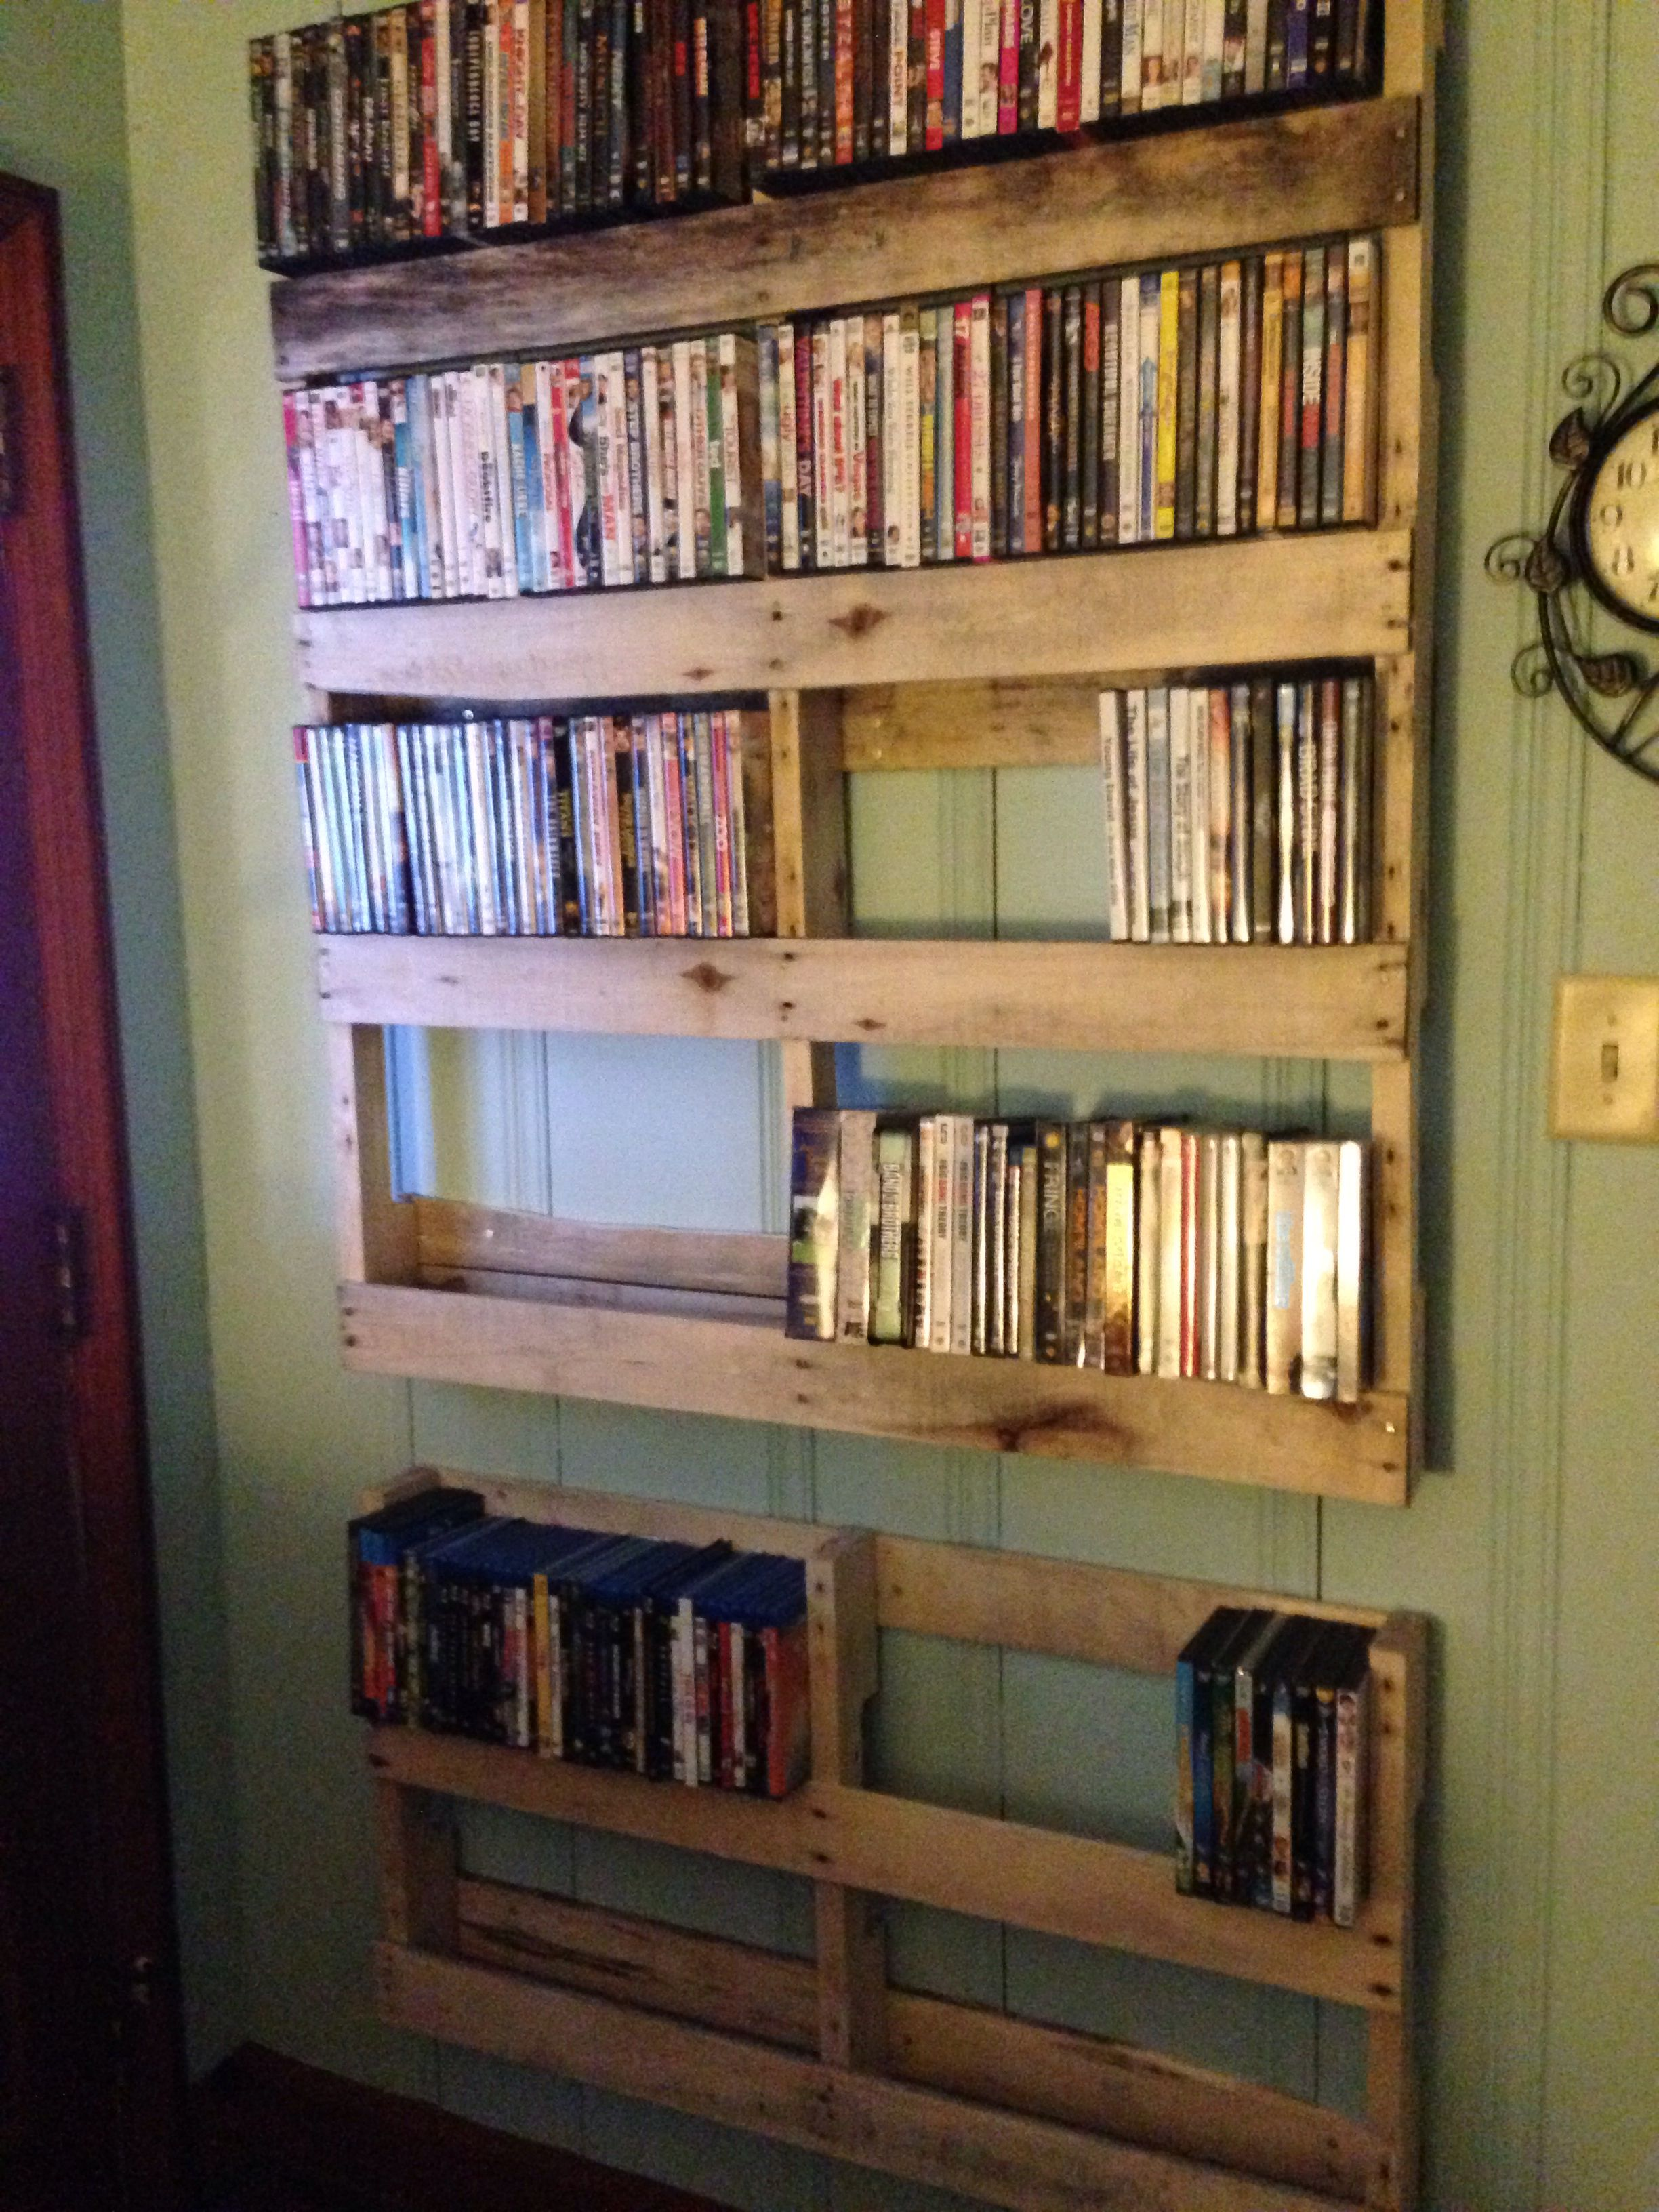 Ordinaire Dvd Storage Ideas: DVD Storage, CD Storage, Dvd Storage Cabinet #dvd #cd  #storage